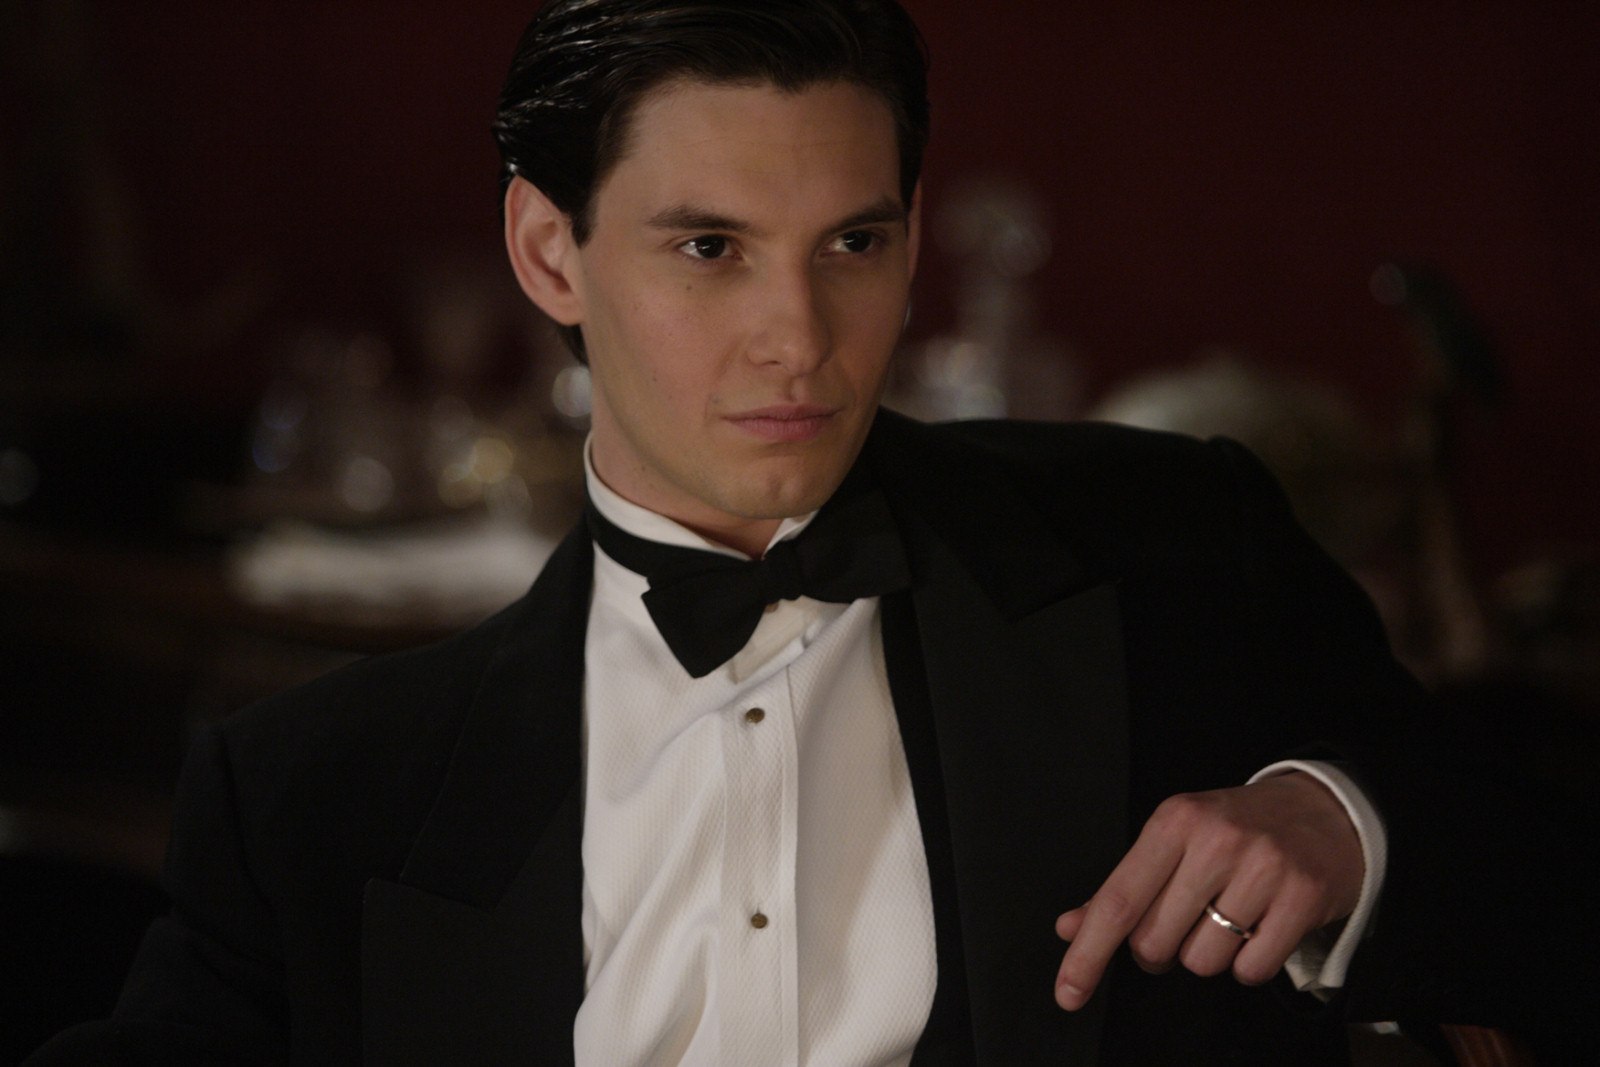 Бен Барнс - Ben Barnes фото №408111: http://www.theplace.ru/photos/photo.php?id=408111